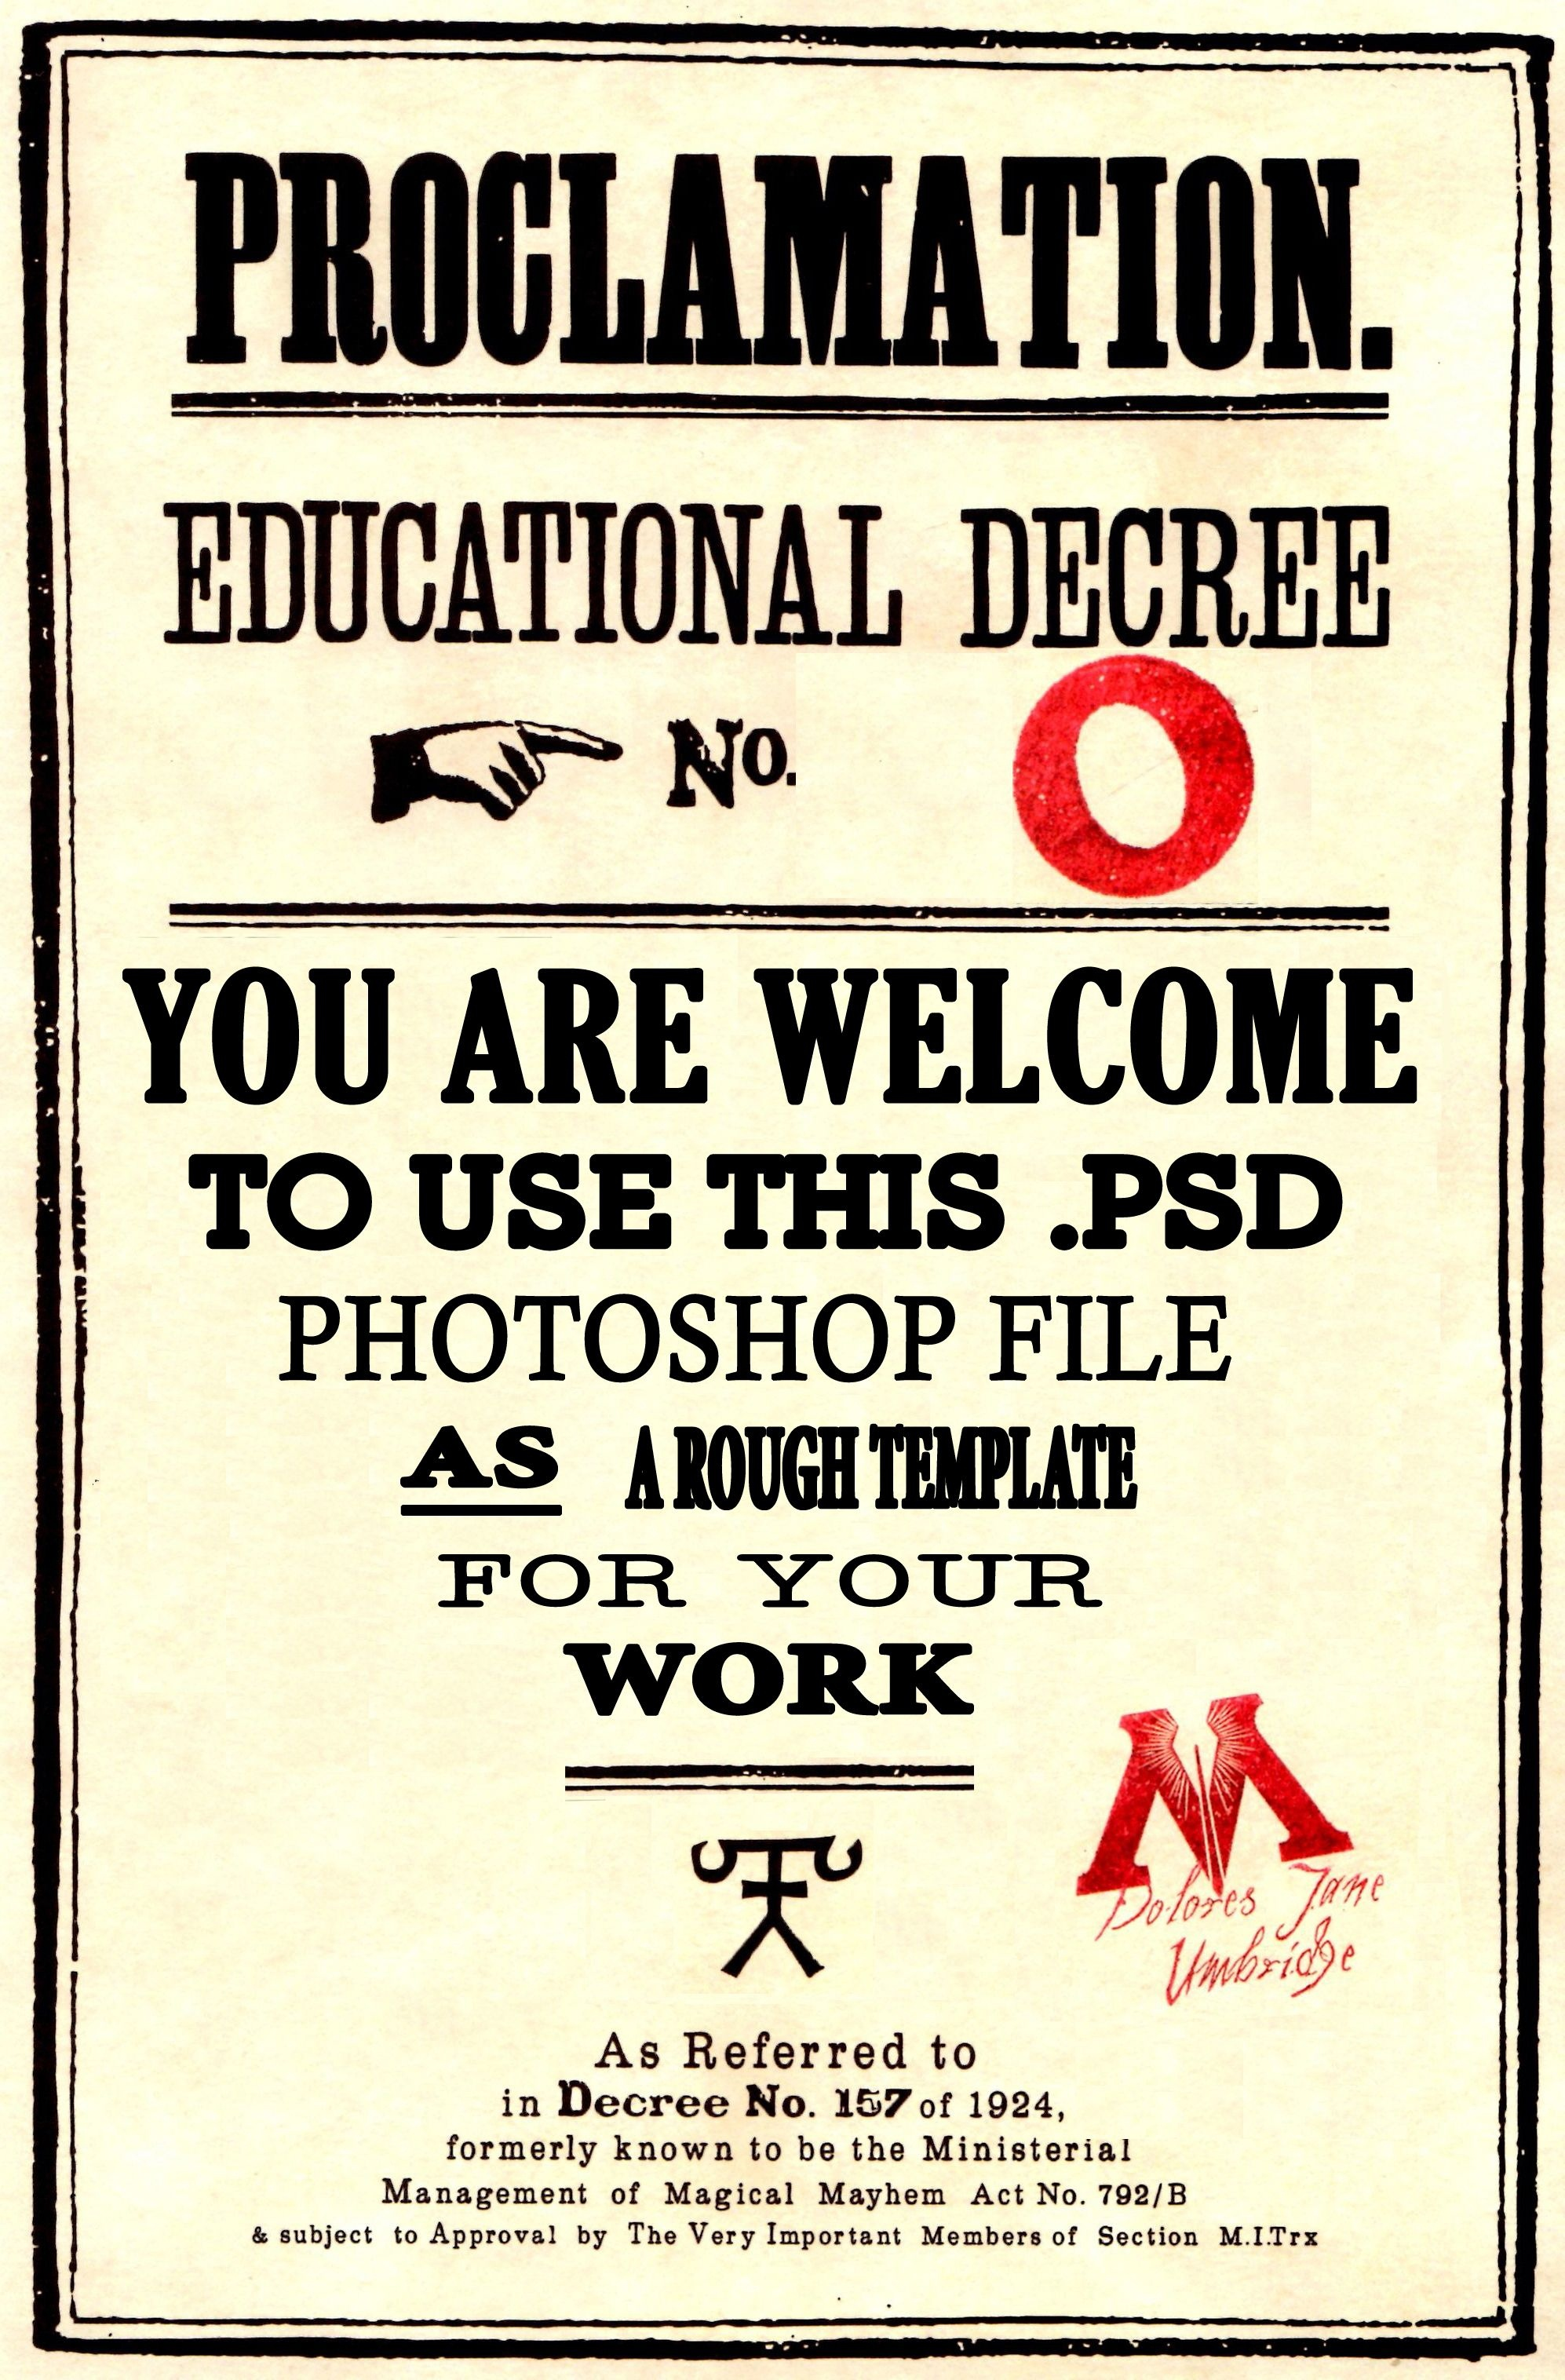 Educational Decree Template From The Harry Potter Film Series. A - Free Printable Harry Potter Posters